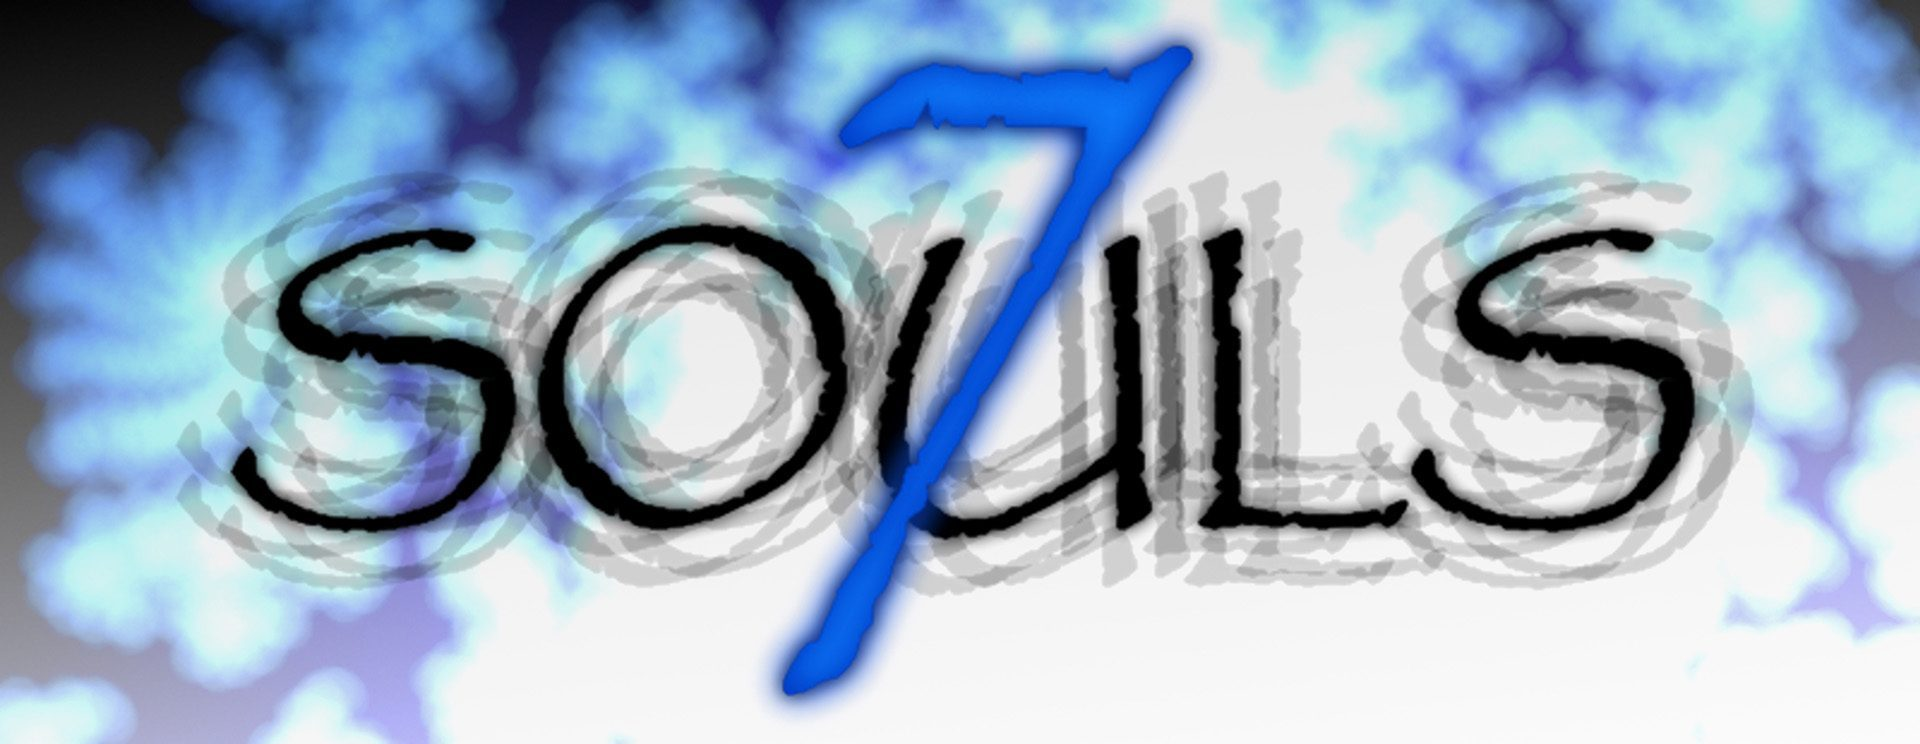 cropped-cropped-banner_small-2.jpg